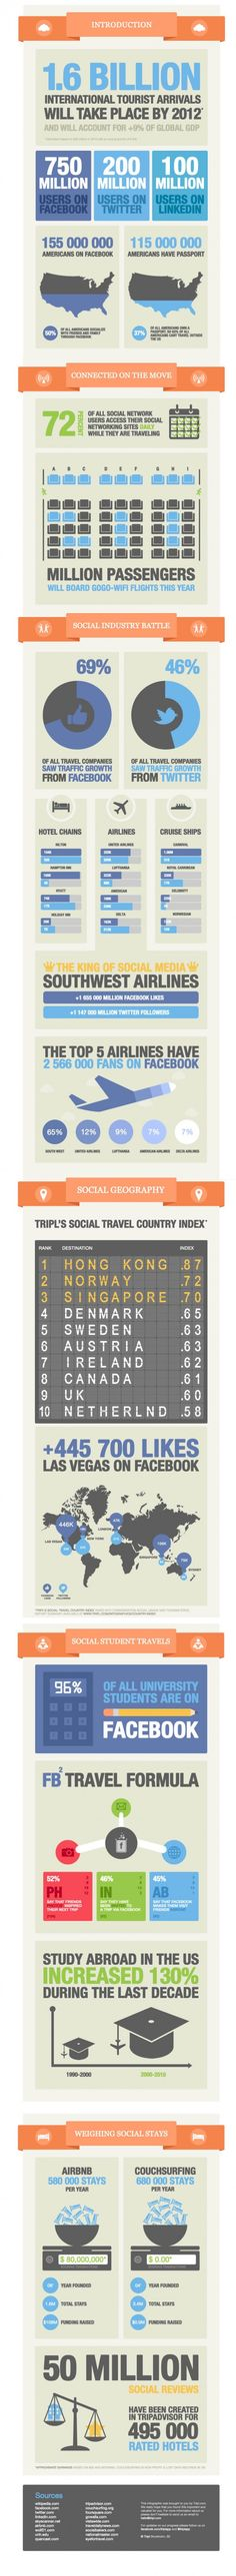 Social Media is changing the way we look at the world and is disrupting nearly every industry. Travel, the world's largets industry, may be slow to adopt, but it cannot escape the impact of 'social'. Tripl is passionate about building the world's best social platform for both customers and business. Brought to you by Tripl.